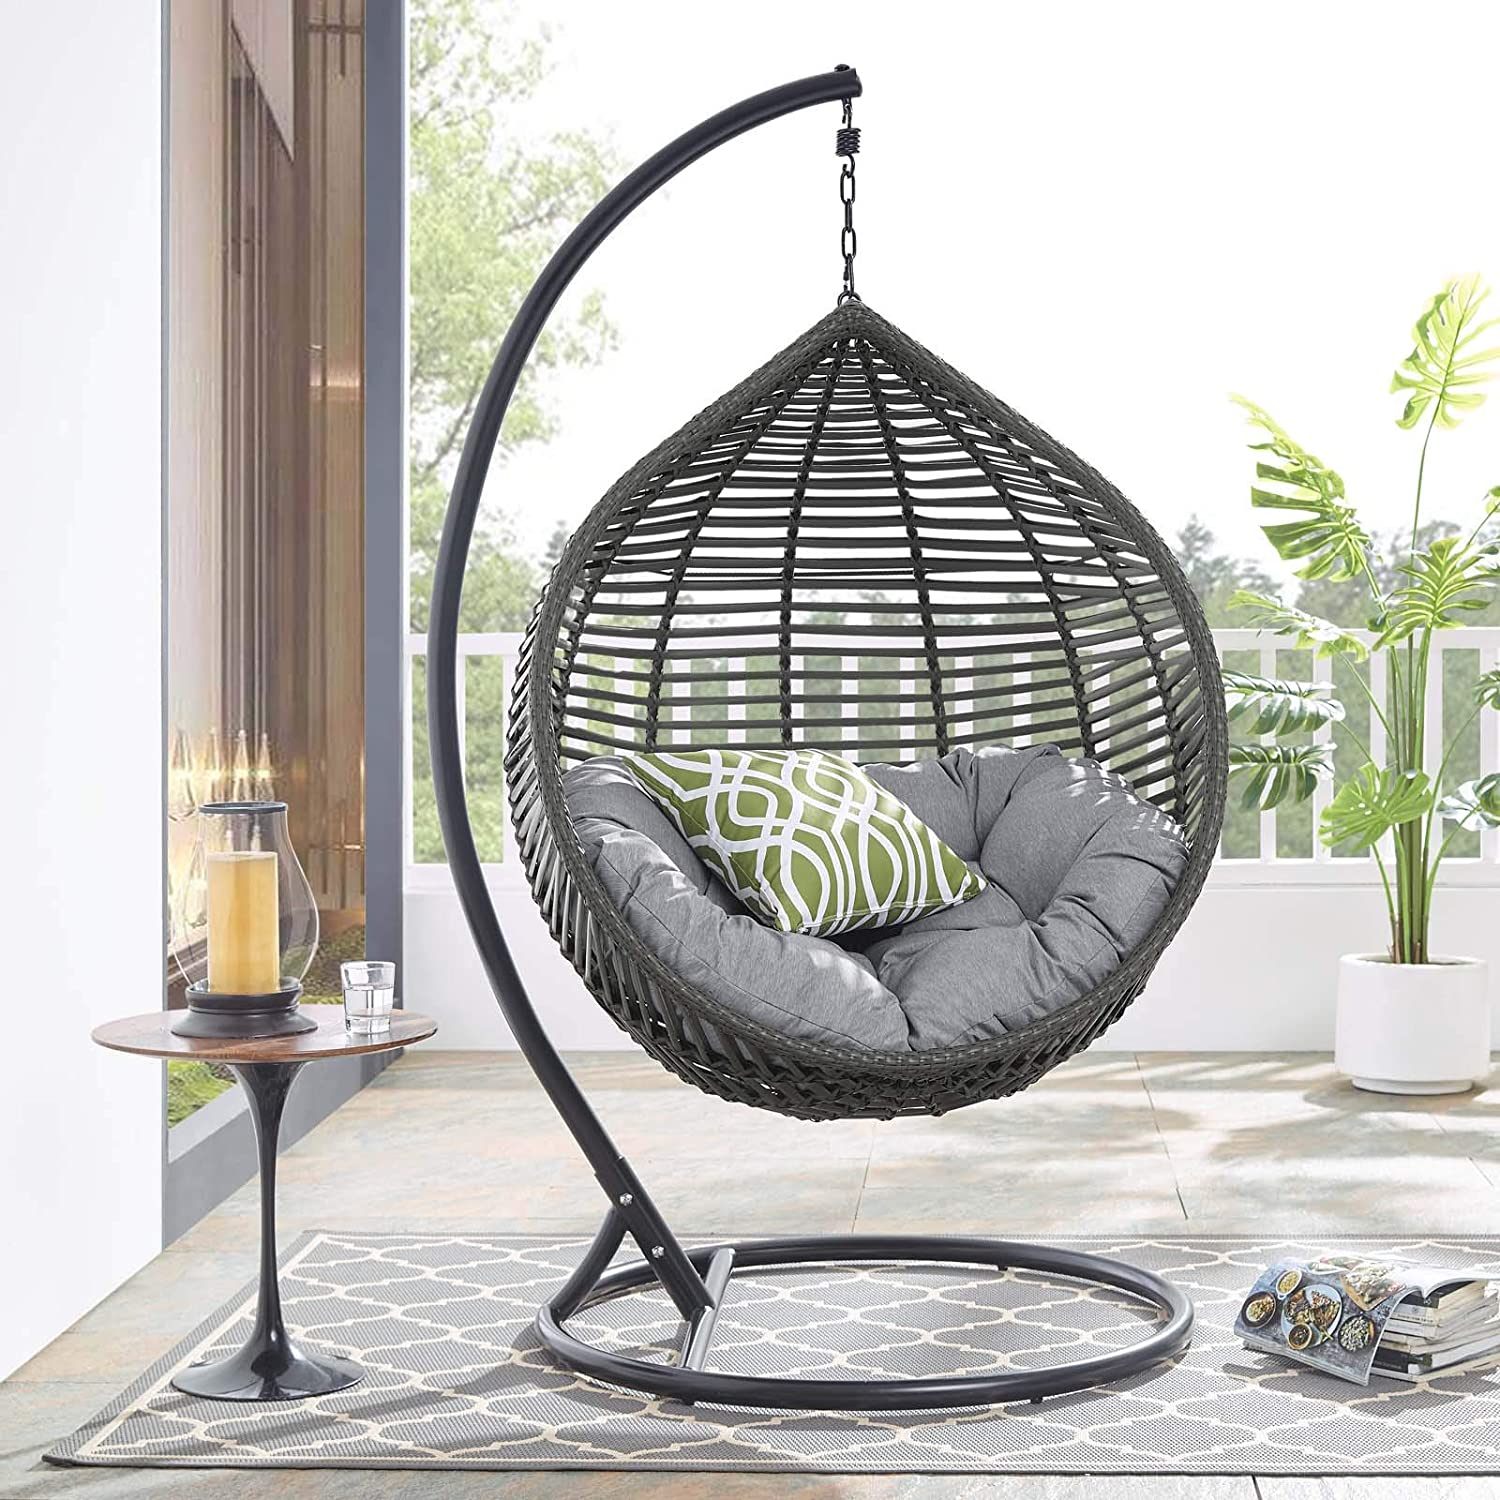 Modway Garner Outdoor Patio Wicker Rattan Teardrop Swing Chair In Gray Gray Garden Outdoor